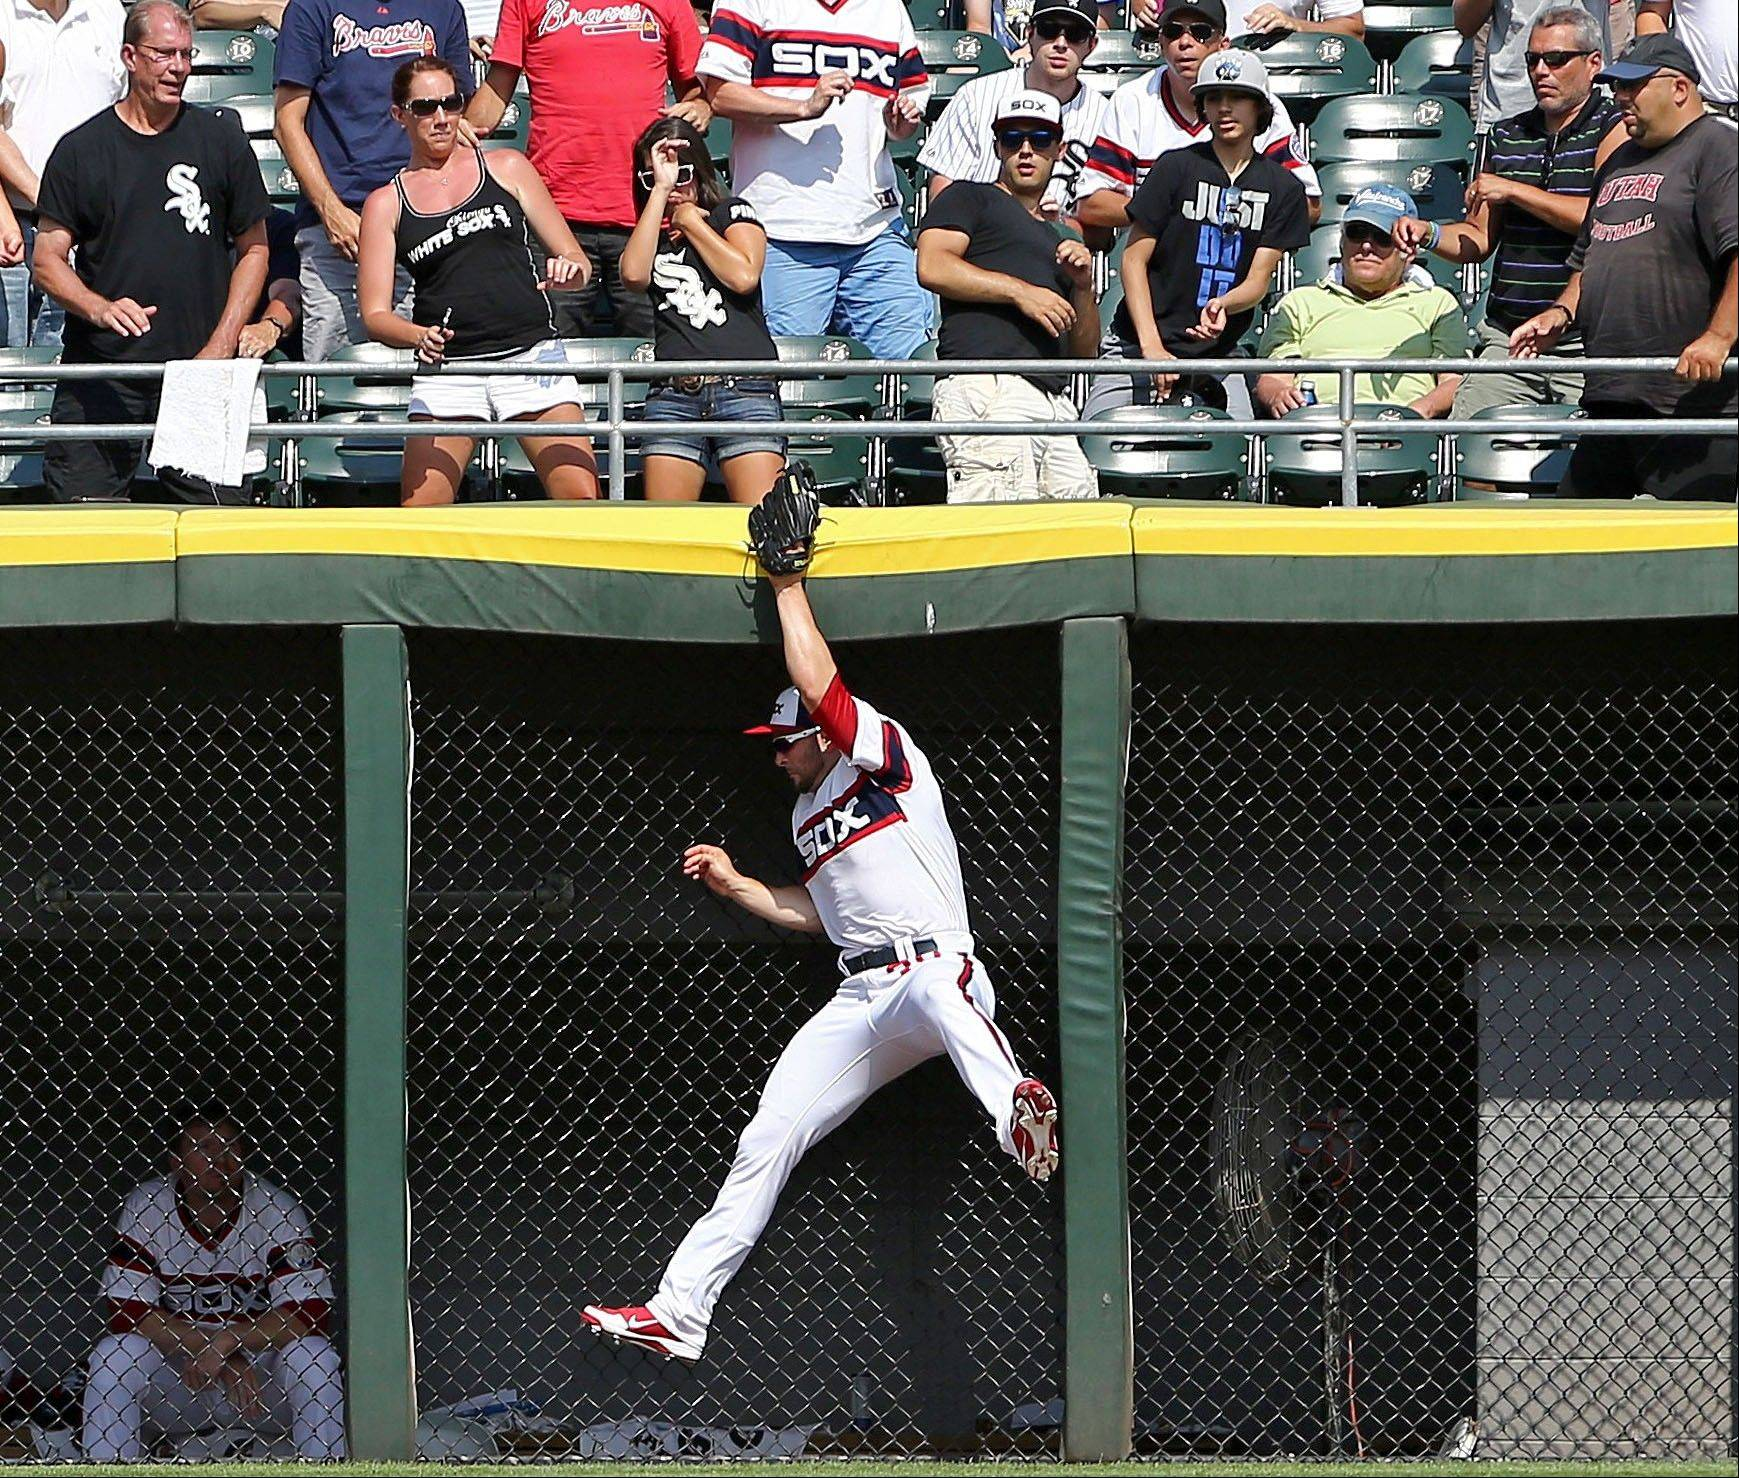 White Sox left fielder Casper Wells robs the Braves� Reed Johnson of a would-be, game-tying home run in the eighth inning Sunday.